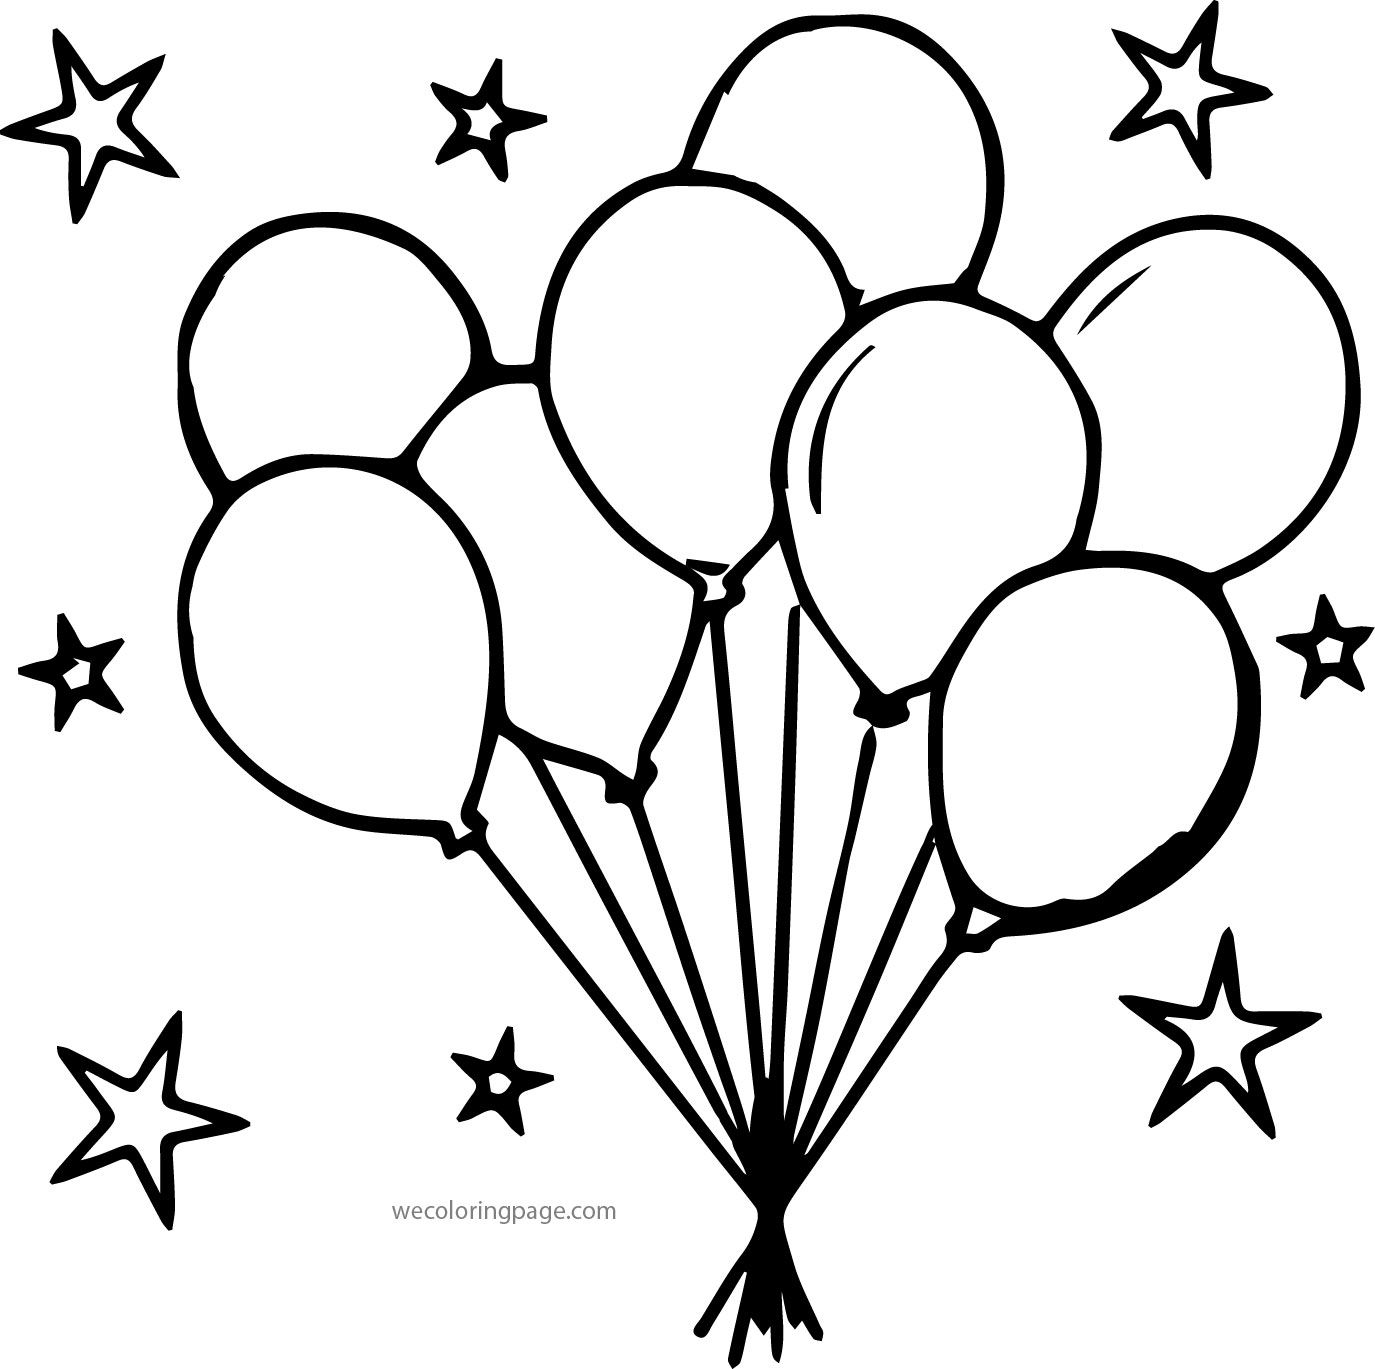 Nice Party Balloons Stars Coloring Page Star Coloring Pages Birthday Coloring Pages Kids Printable Coloring Pages